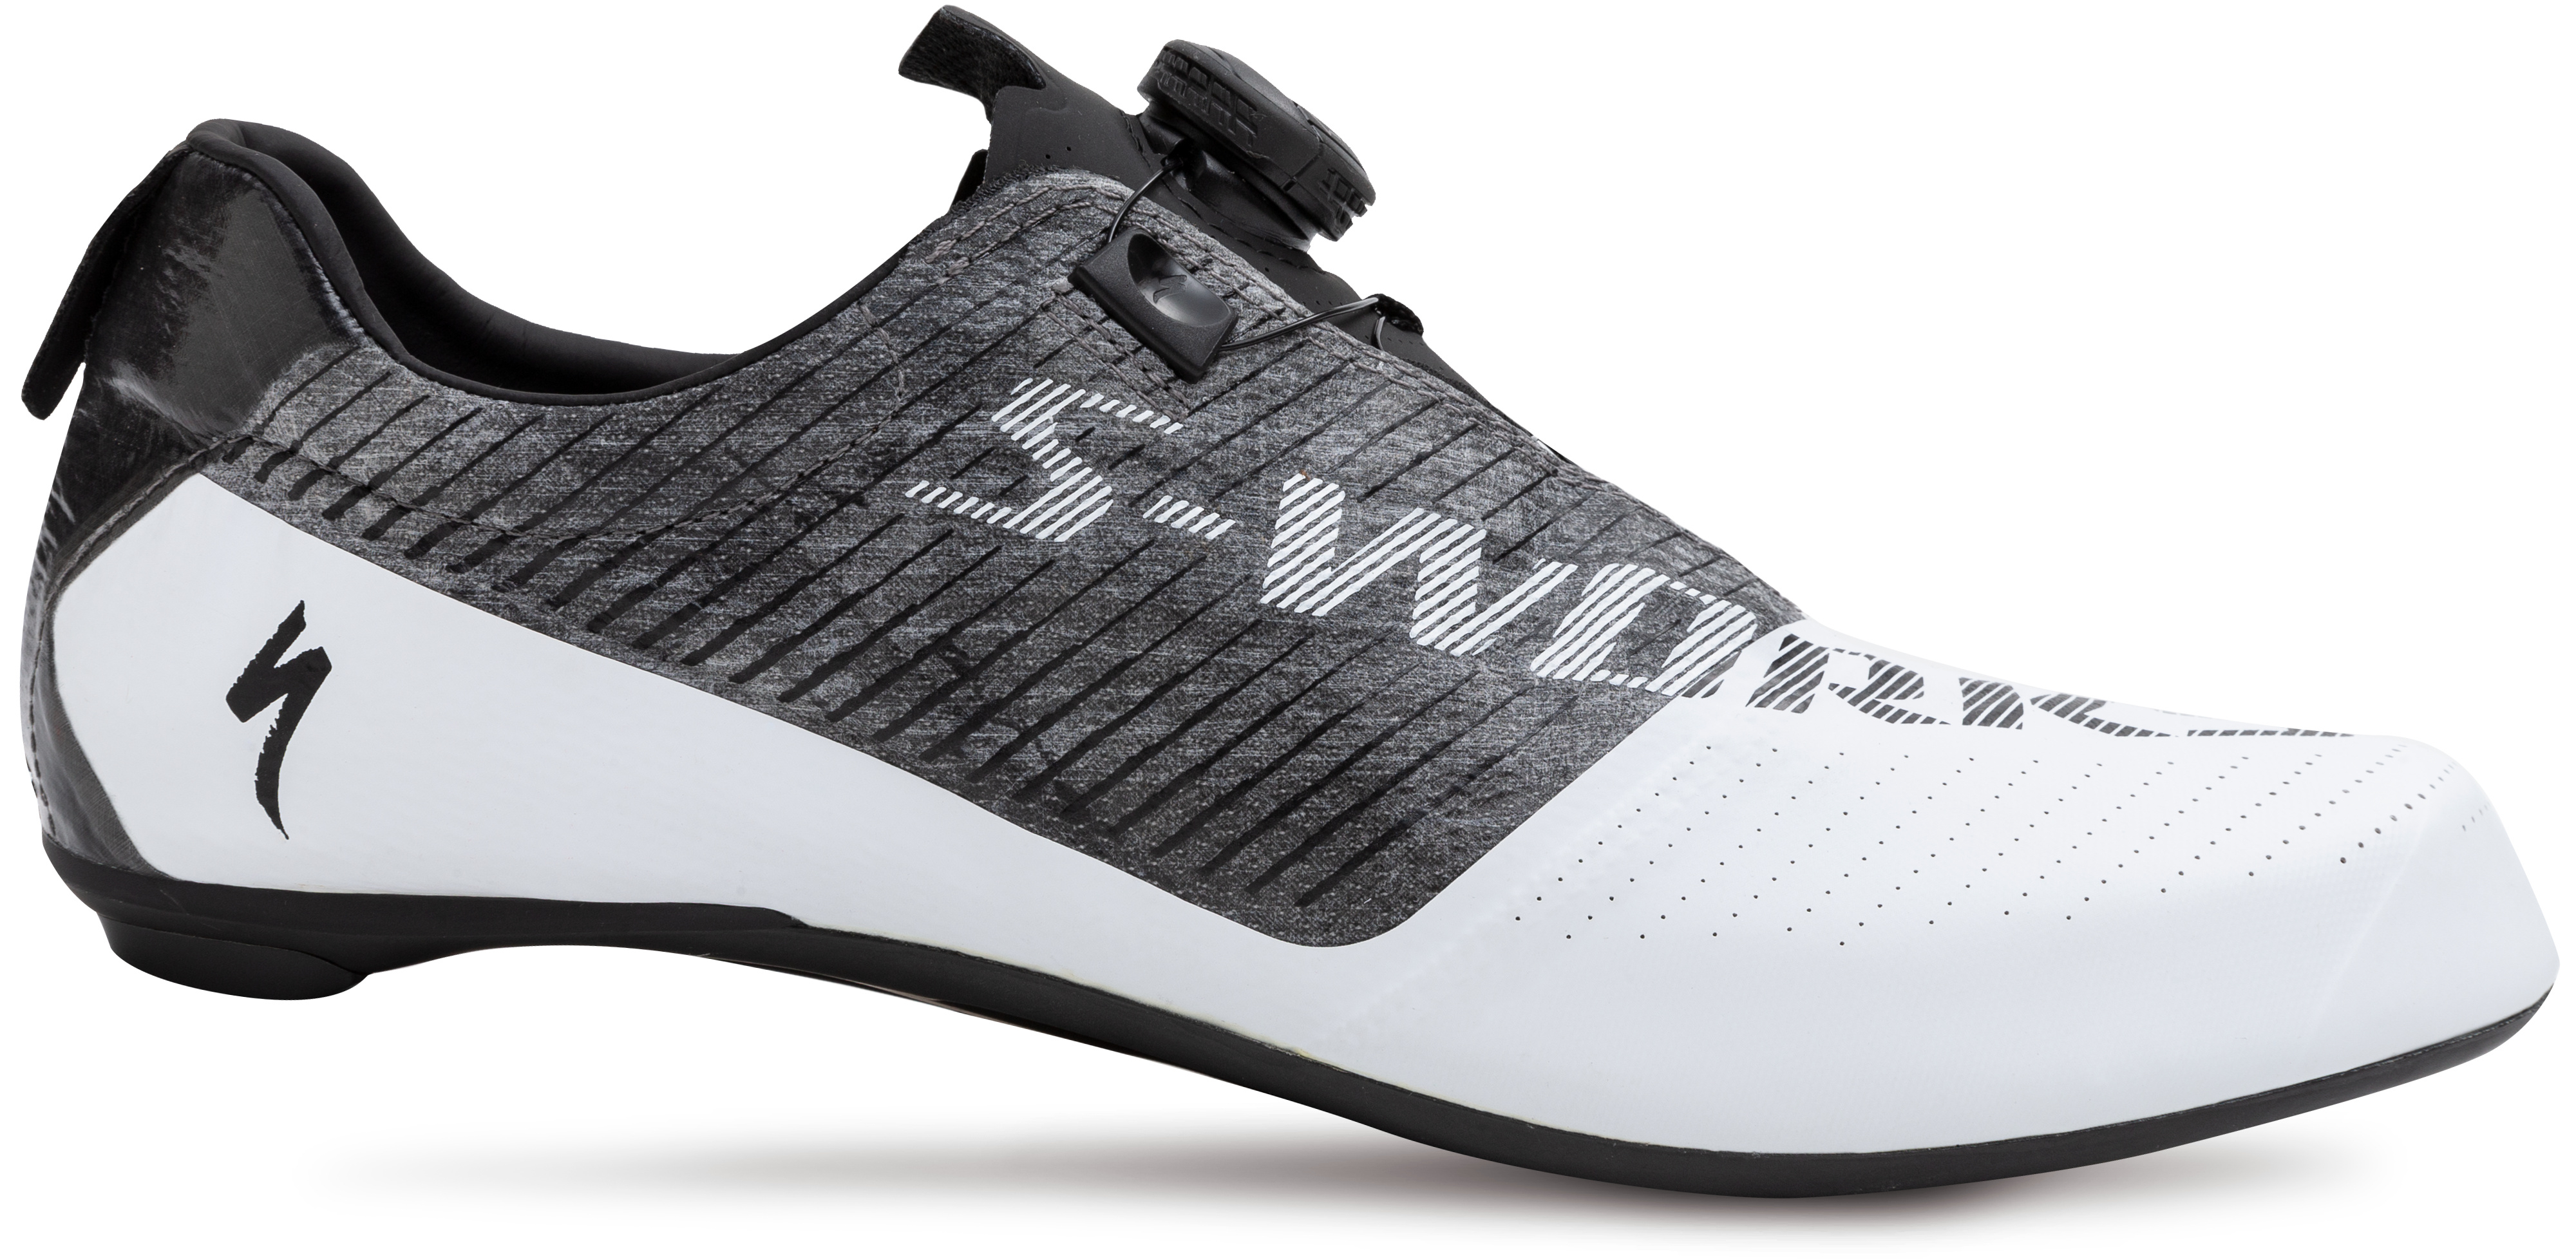 2020 Specialized S Works Exos Road Shoes Specialized